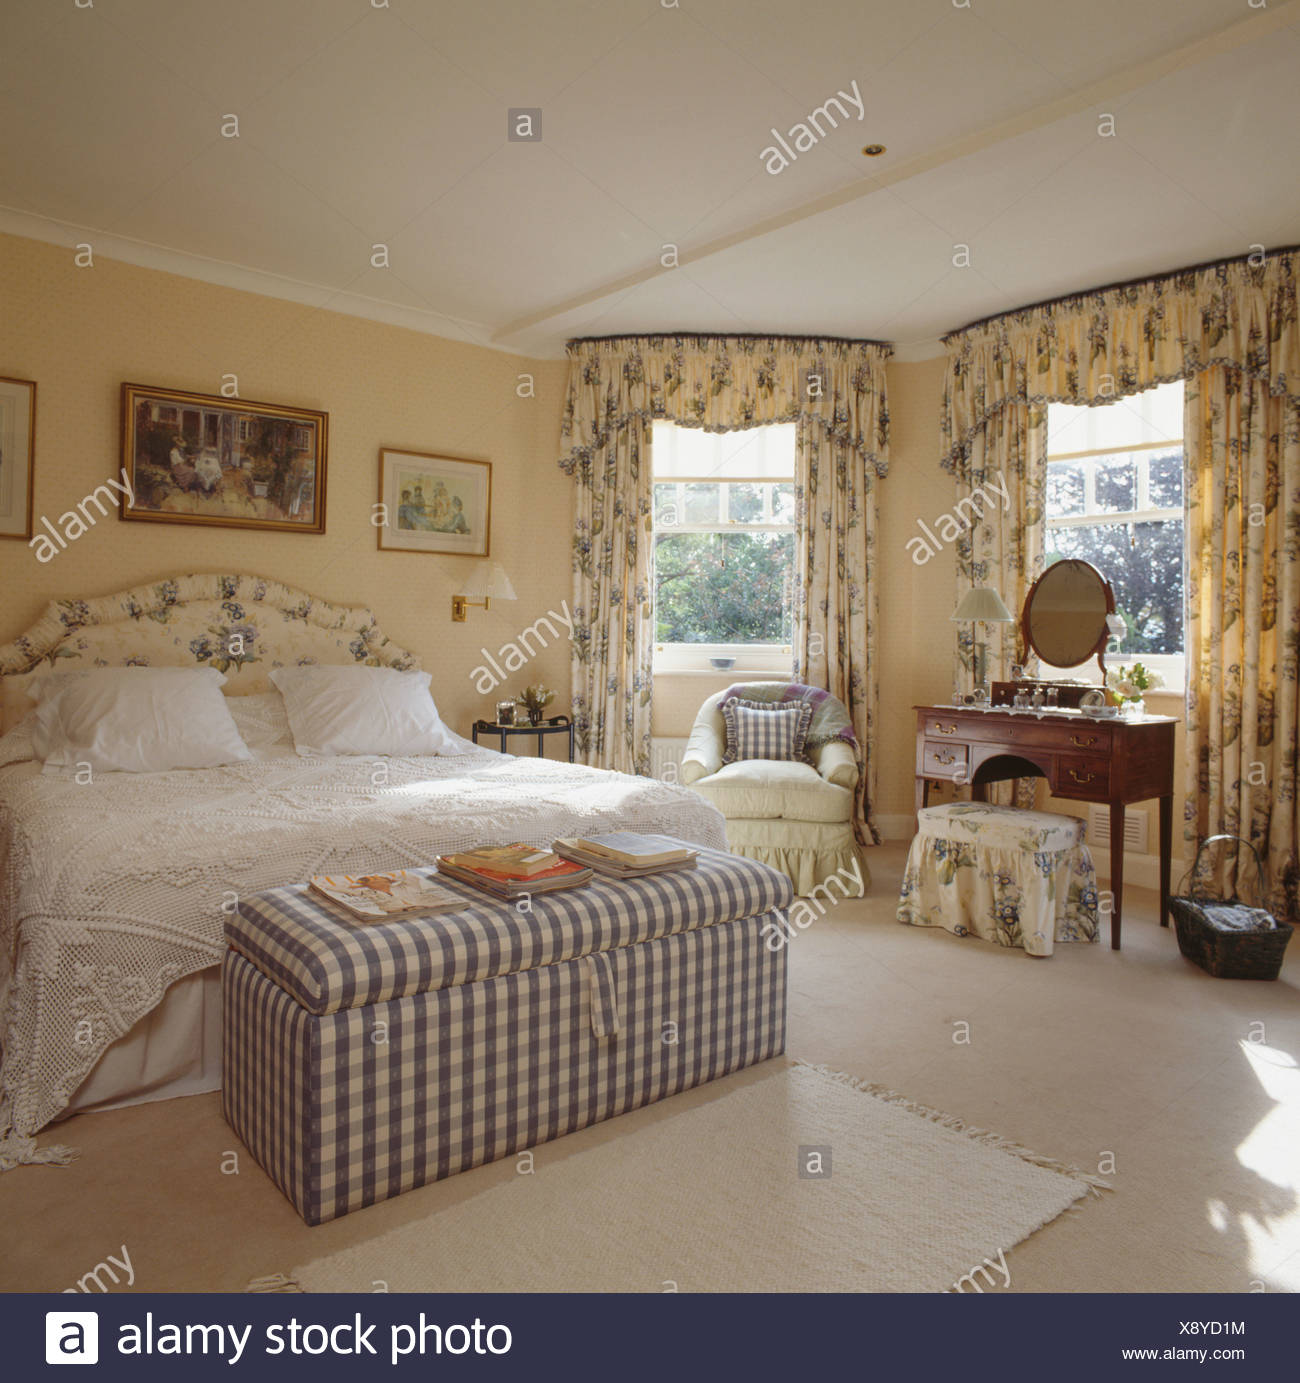 Checked Upholstered Ottoman In Pastel Yellow Bedroom With Patterned Yellow Floral Curtains And White Bedlinen Stock Photo Alamy